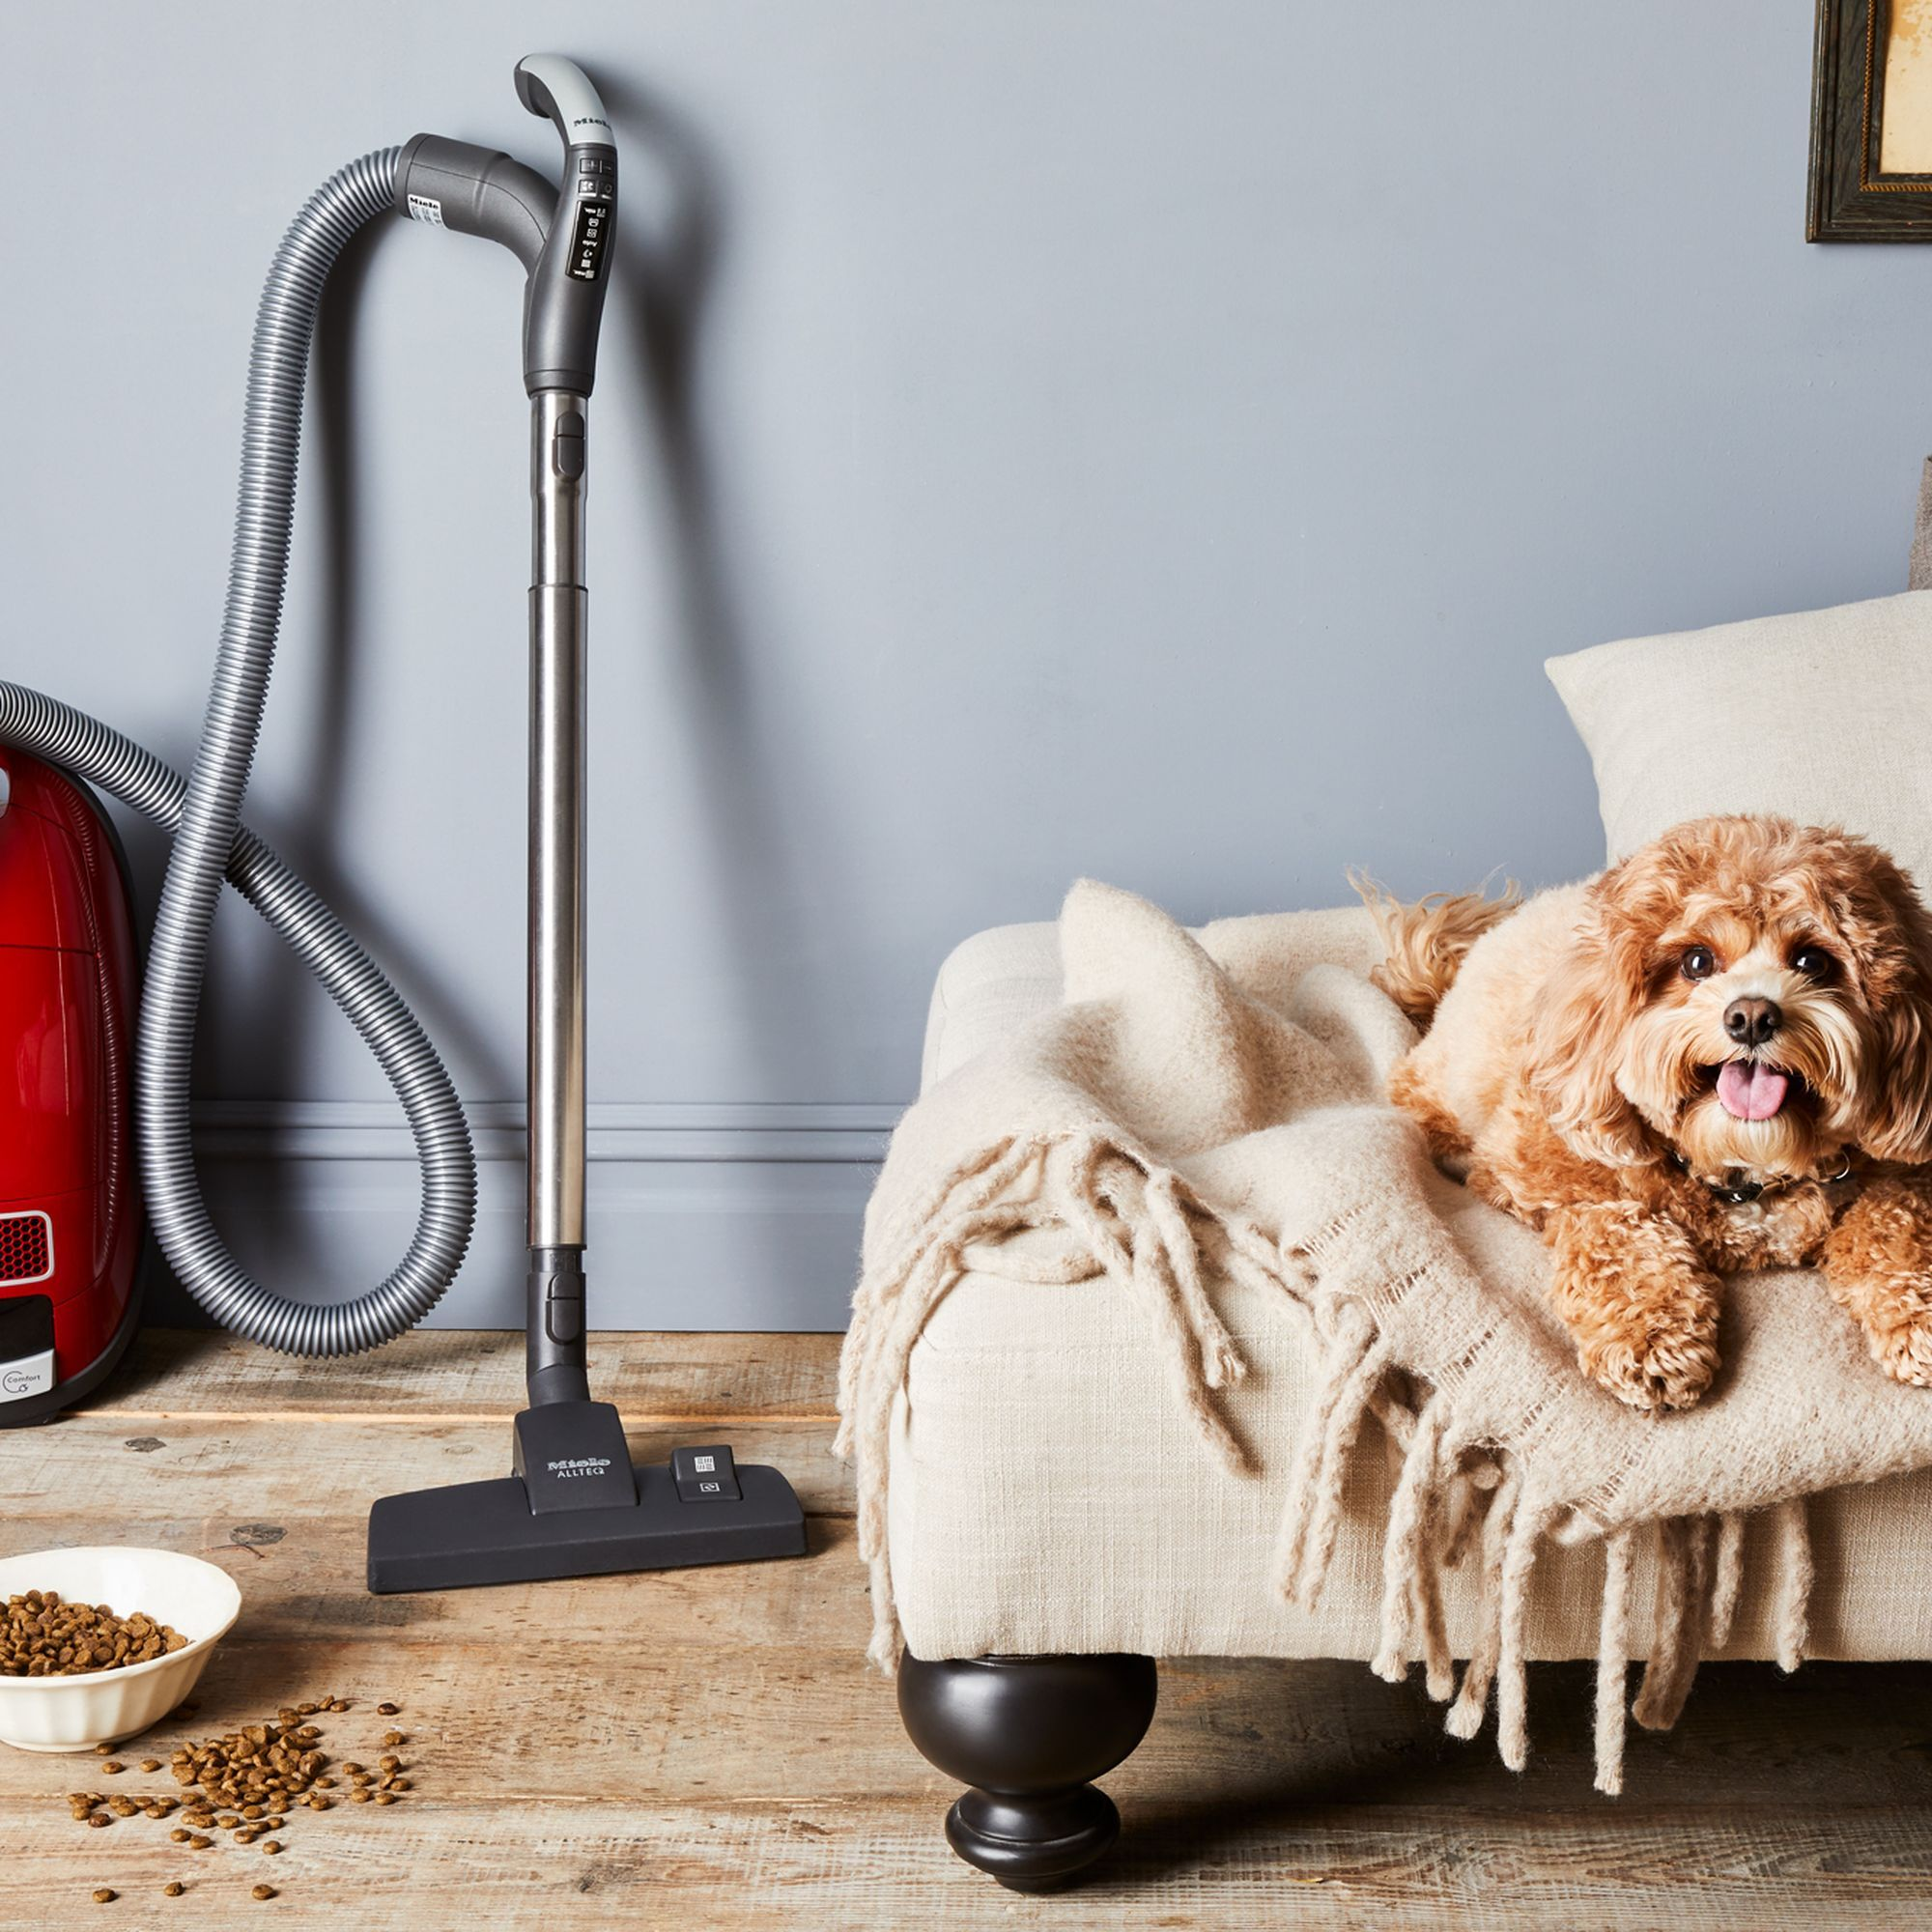 How to Keep Your Home Clean When You Have a Pet House